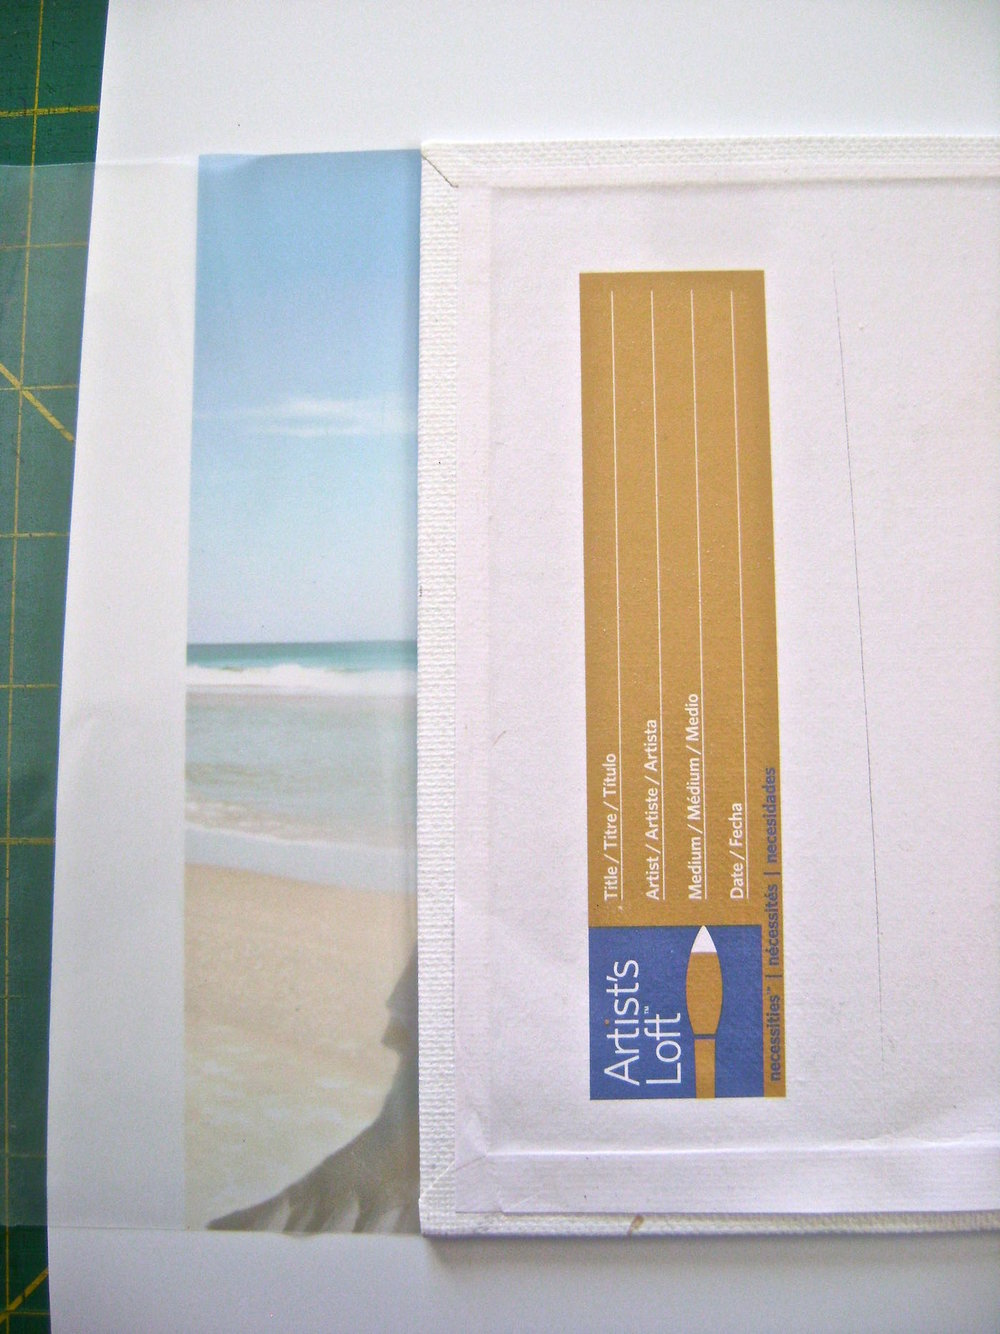 "step 10 - Spray adhesive on the flat 5"" x 7"" canvas. Apply adhesive to the back edges too. Align the second printed film to the top of the flat canvas as you did with the first image. Wrap the sides around to the back and press to secure it. Cut away excess."